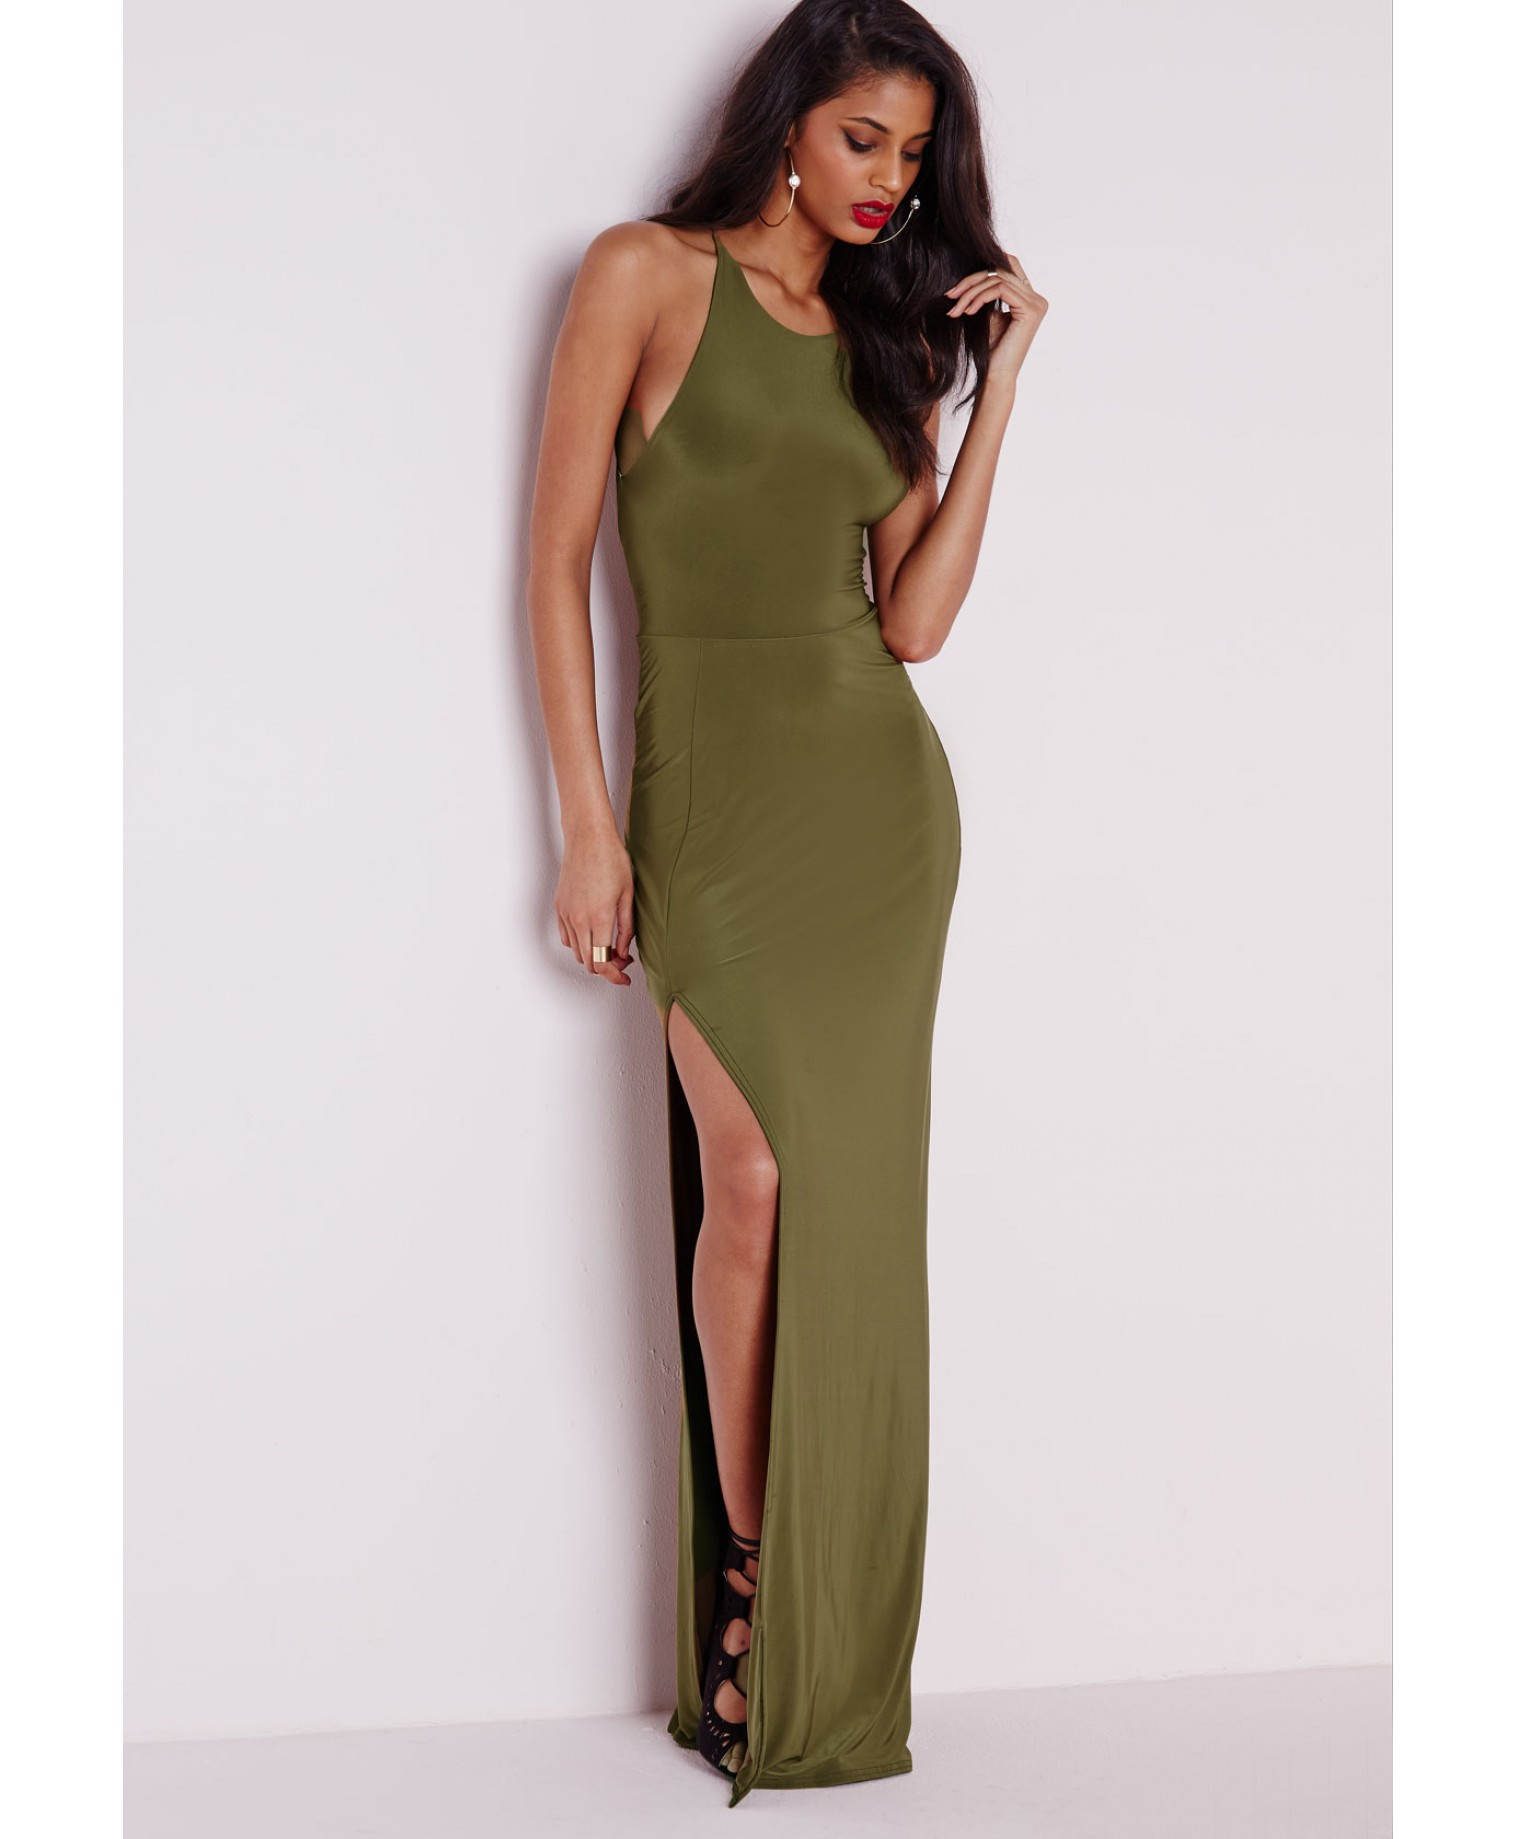 Free shipping BOTH ways on three dots racerback maxi dress w side slit, from our vast selection of styles. Fast delivery, and 24/7/ real-person service with a smile. Click or call